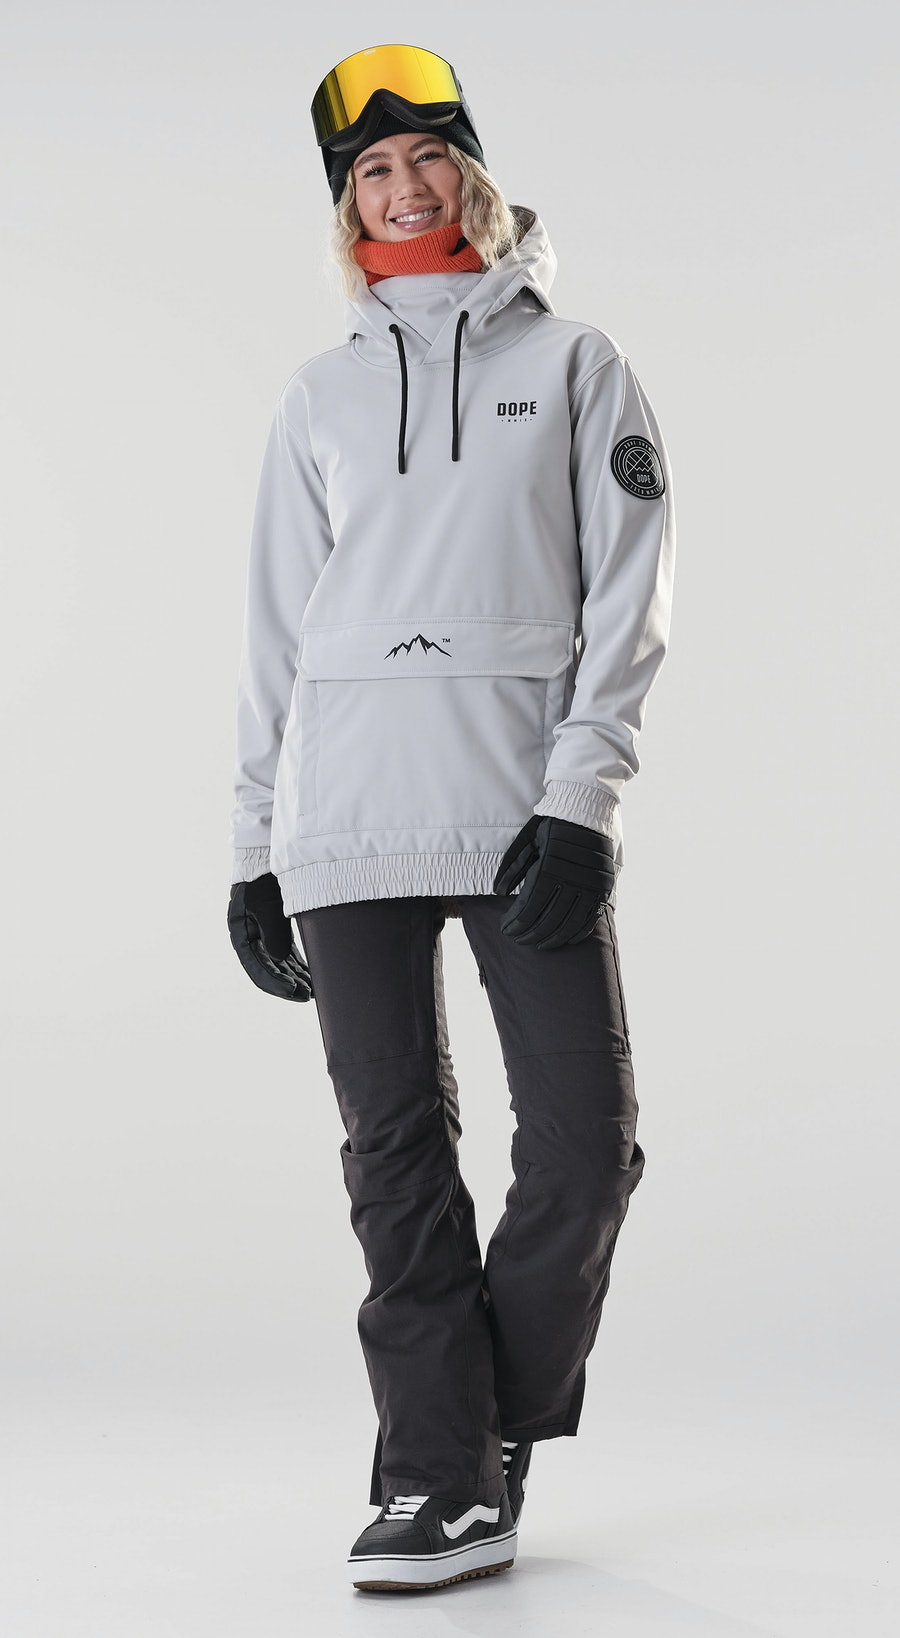 Dope Wylie Capital W Light Grey Vêtements de Snowboard  Multi